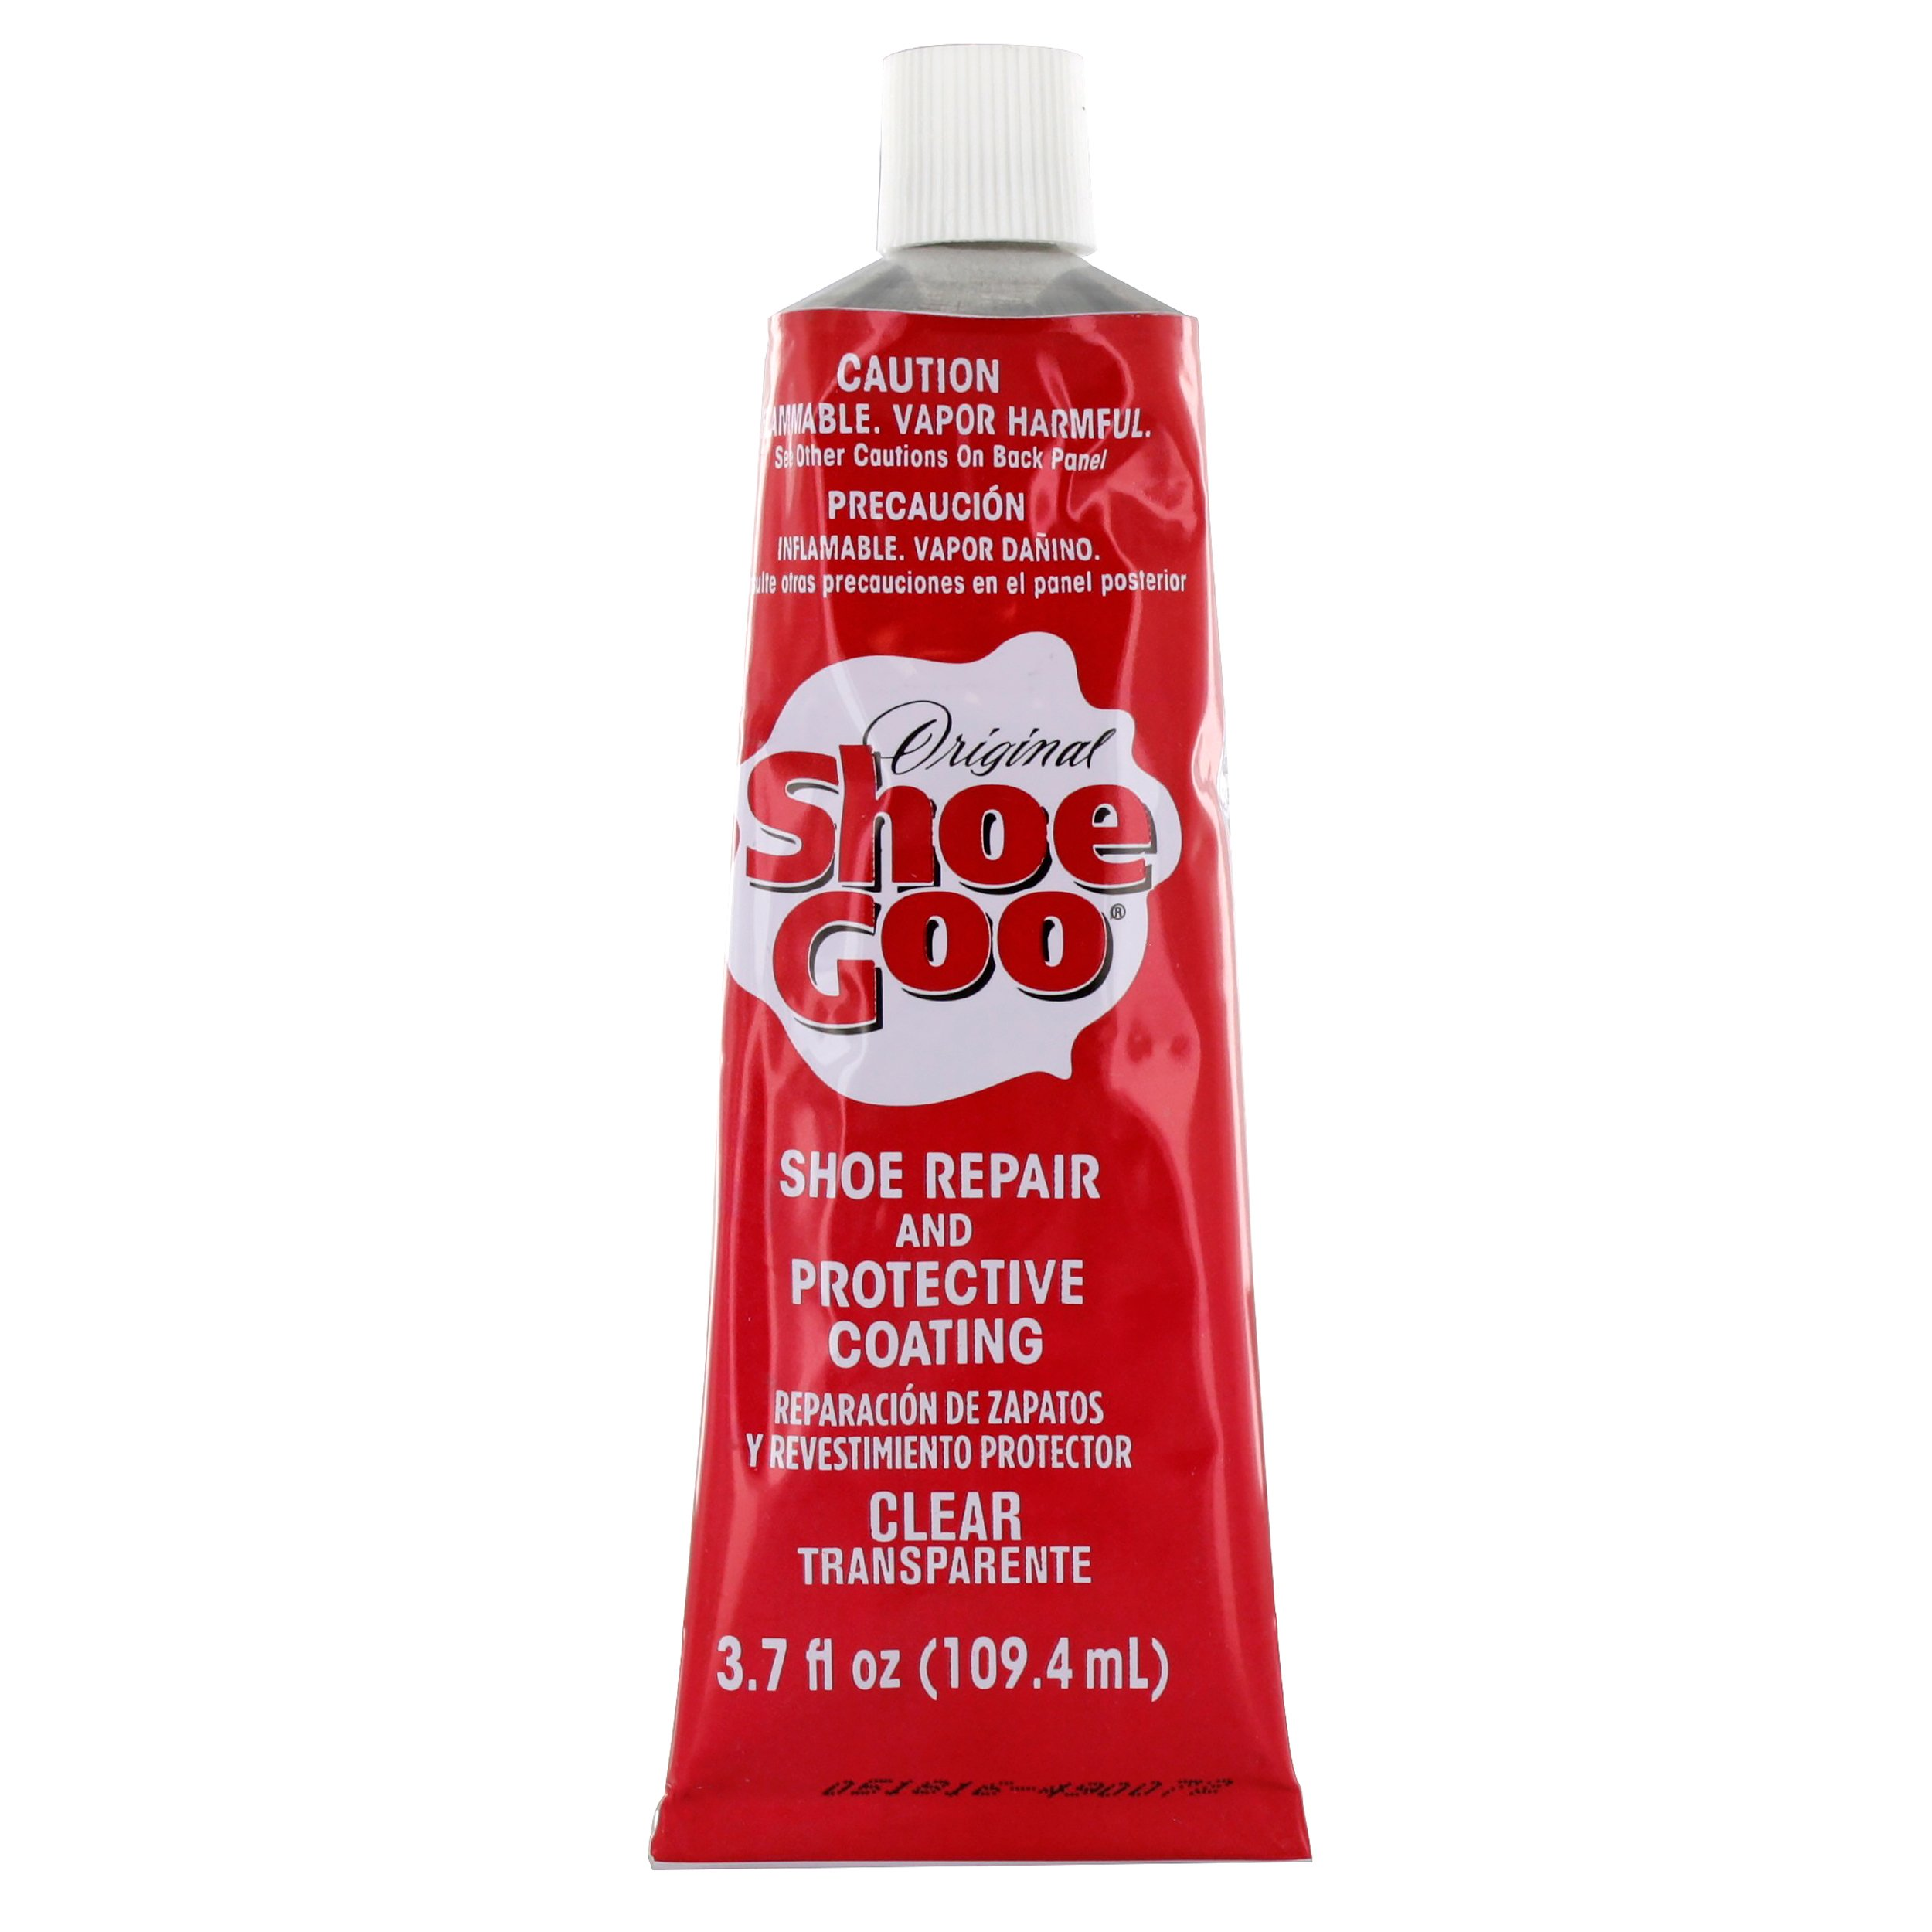 Shoe Goo Repair Adhesive for Fixing Worn Shoes or Boots, Clear, 3.7-Ounce